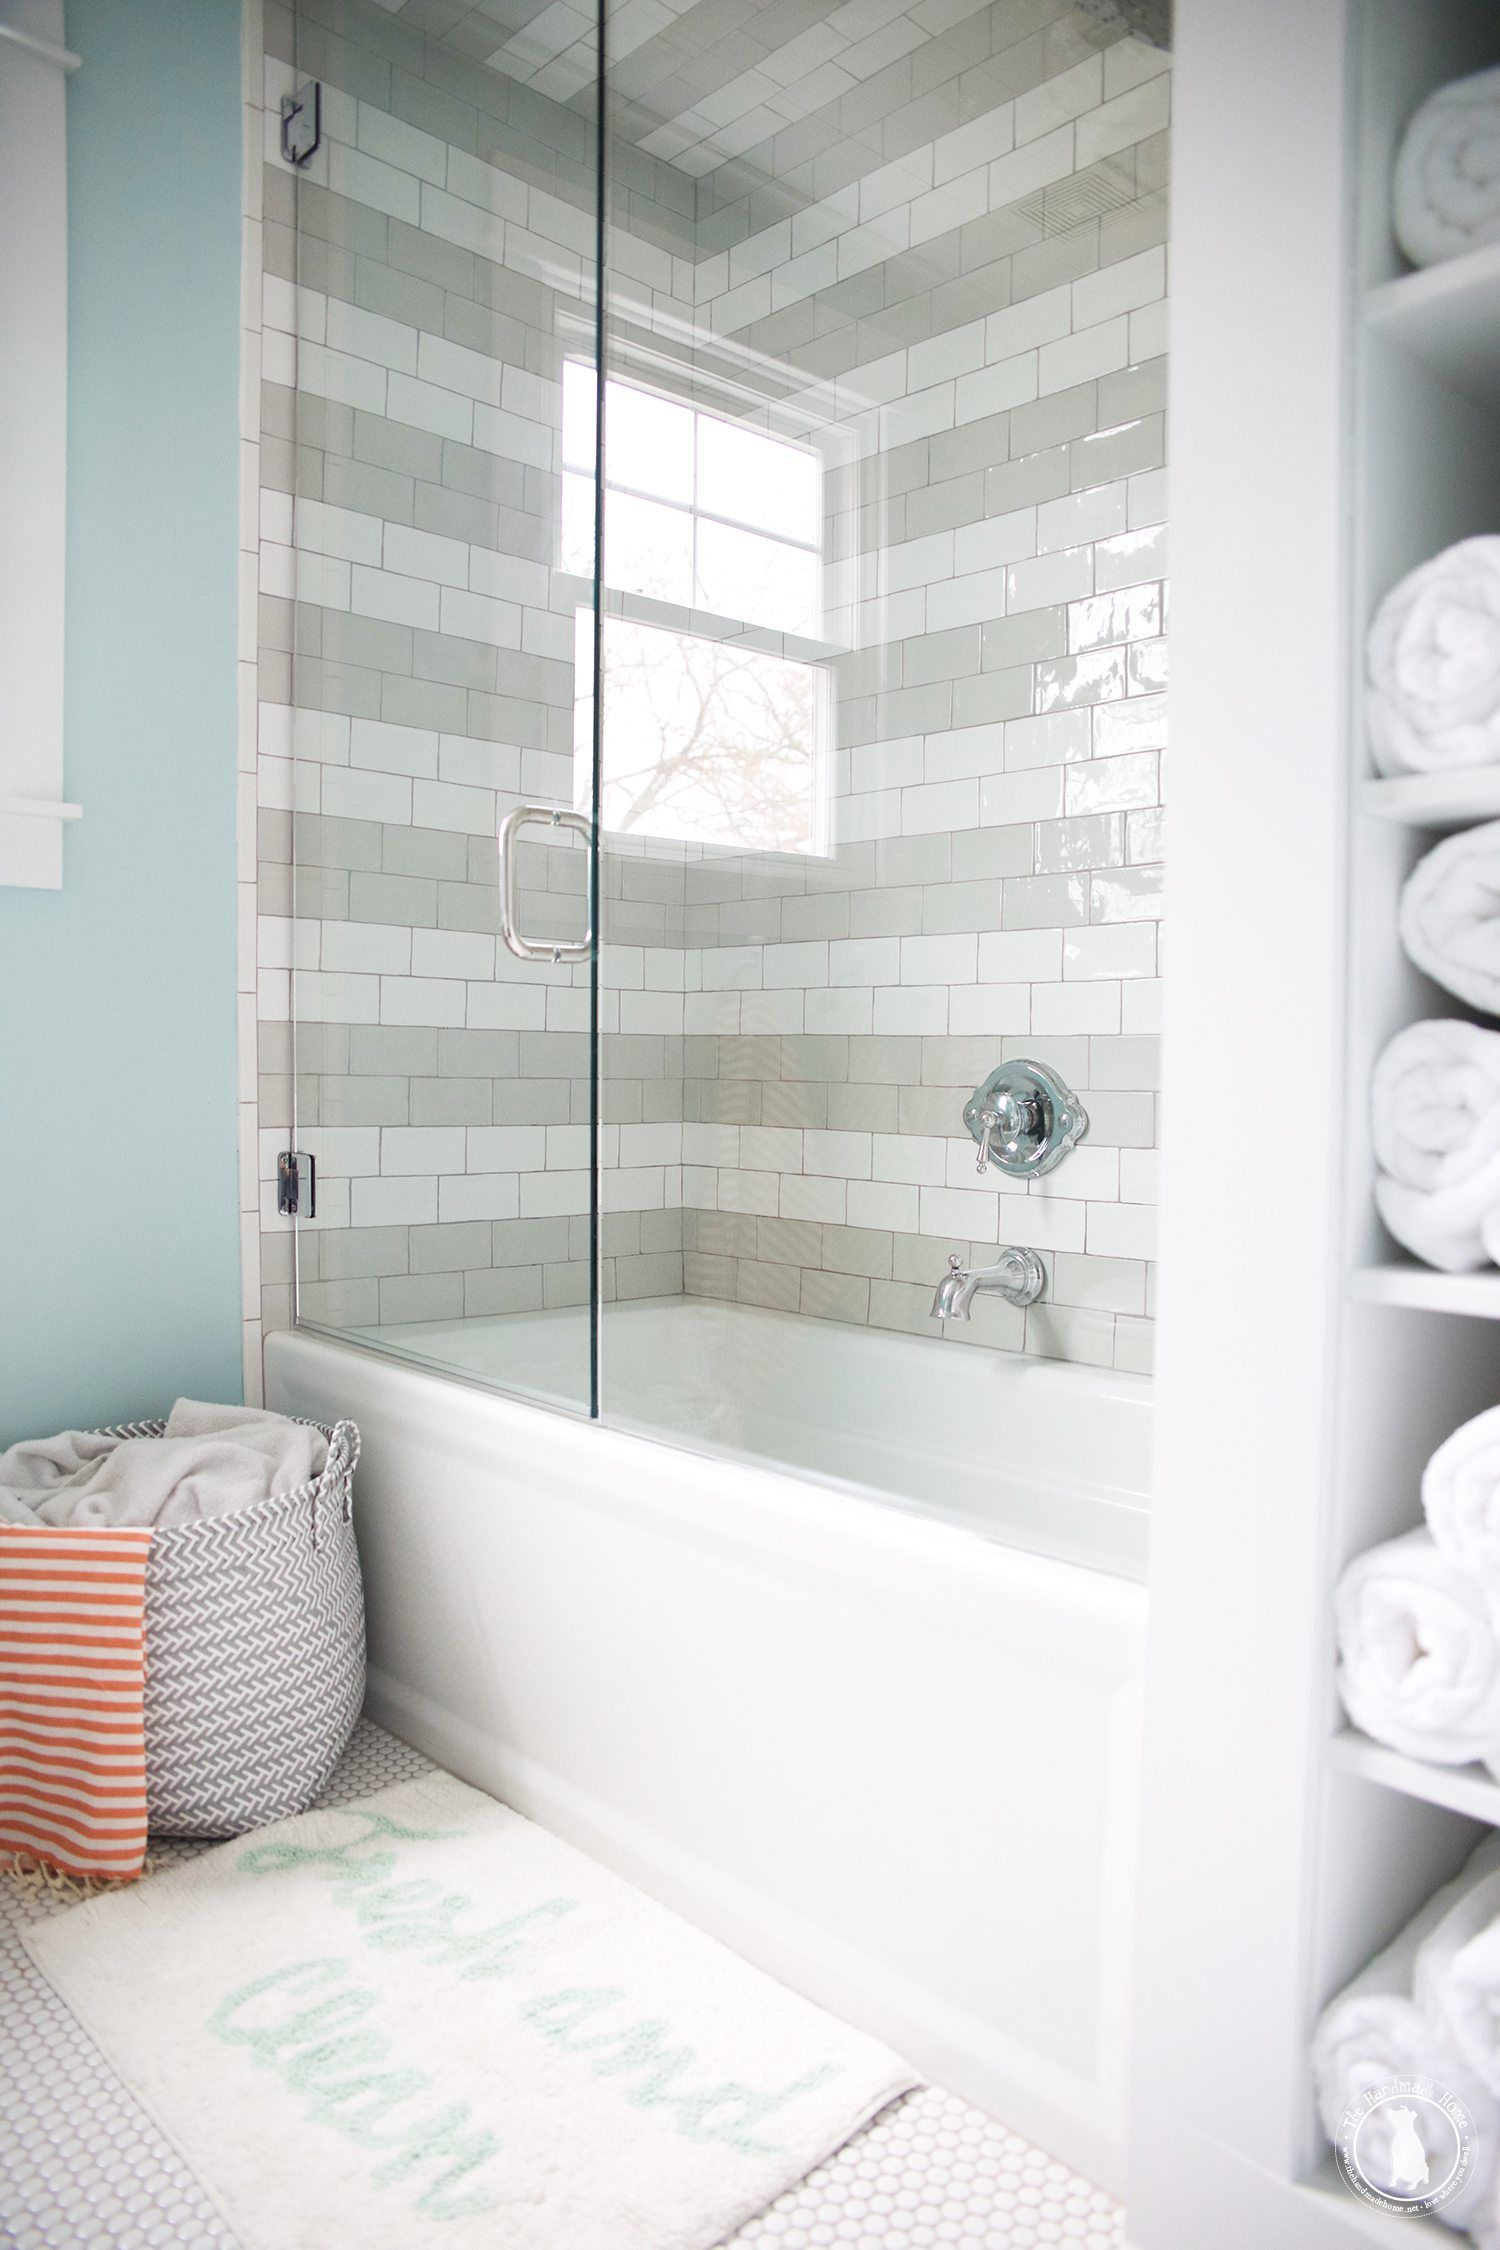 kids bathroom sources | Pinterest | Kid bathrooms, Bath and Girl ...